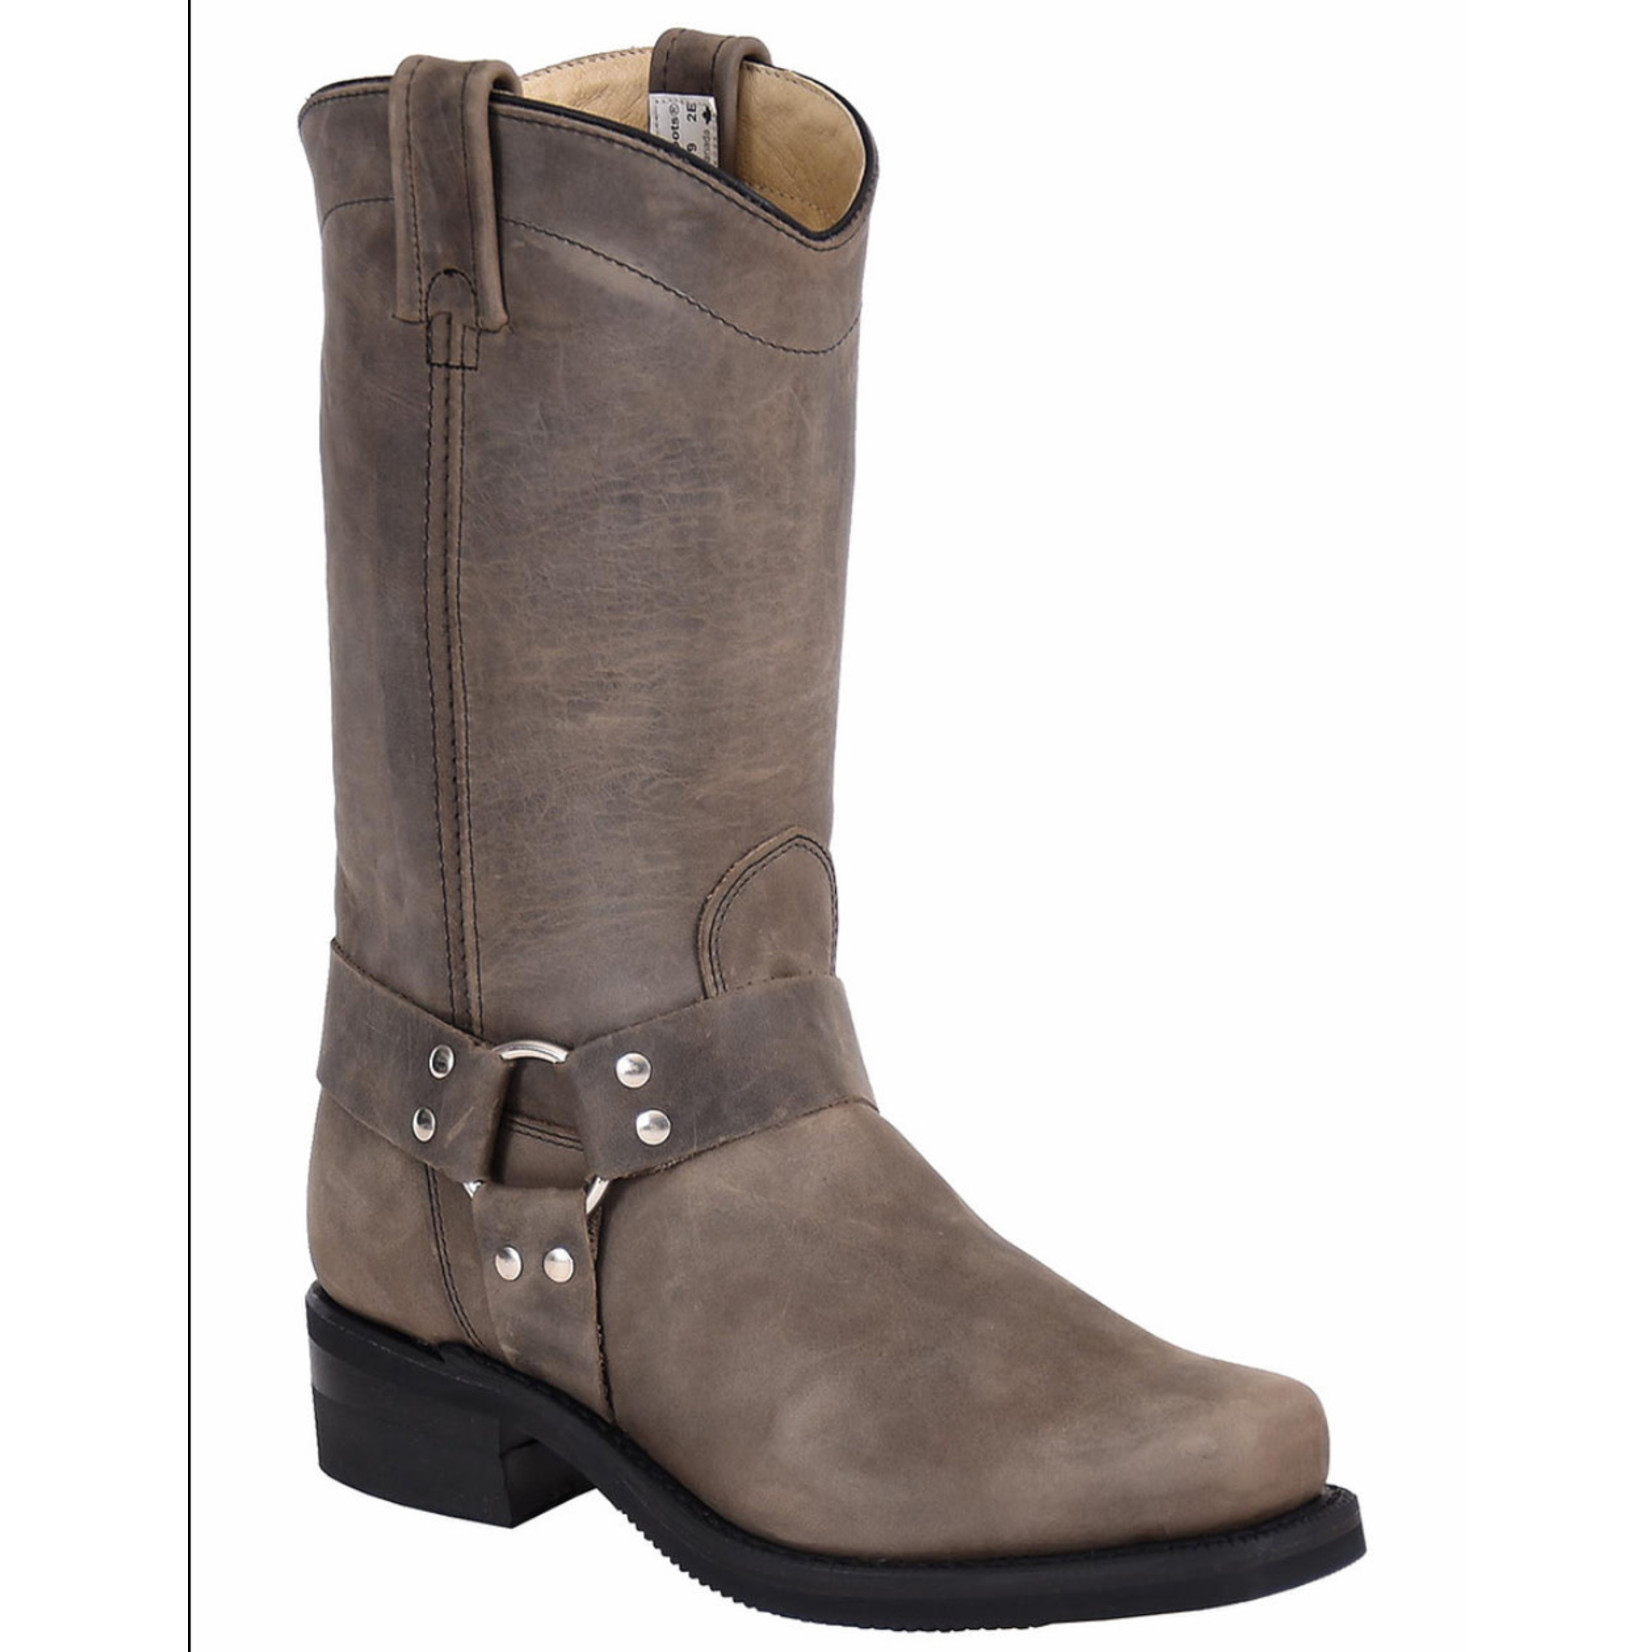 Canada West Canada West Men's Bikers and Engineers Boot 2E 5103